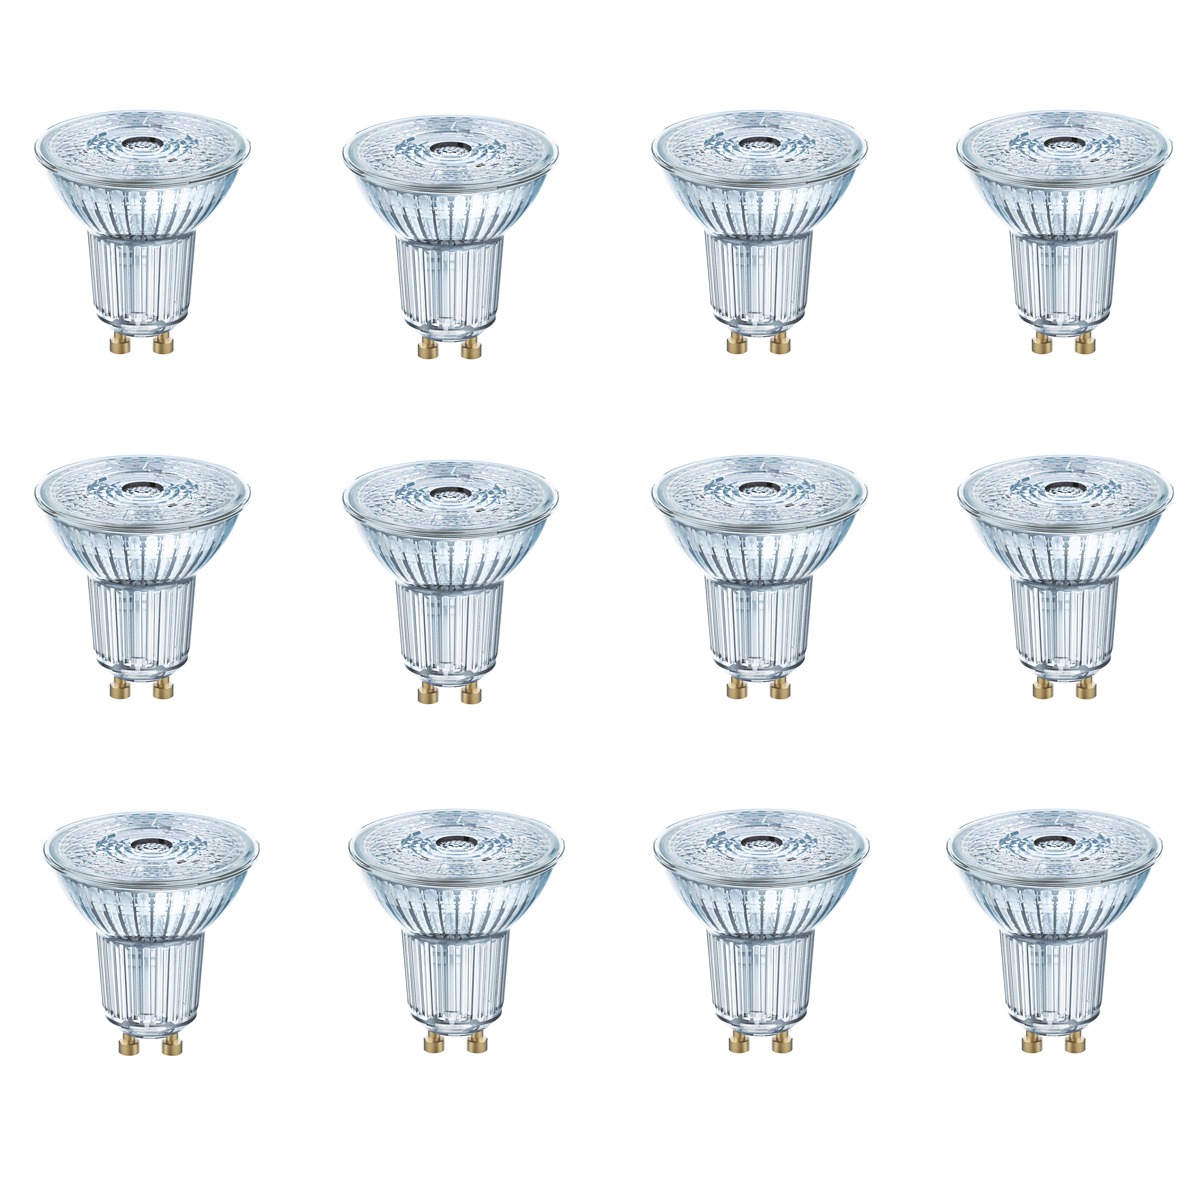 osram led superstar par16 gu10 4 5w 35w 230lm warm wei 2700k dimmable 90ra 12er ebay. Black Bedroom Furniture Sets. Home Design Ideas